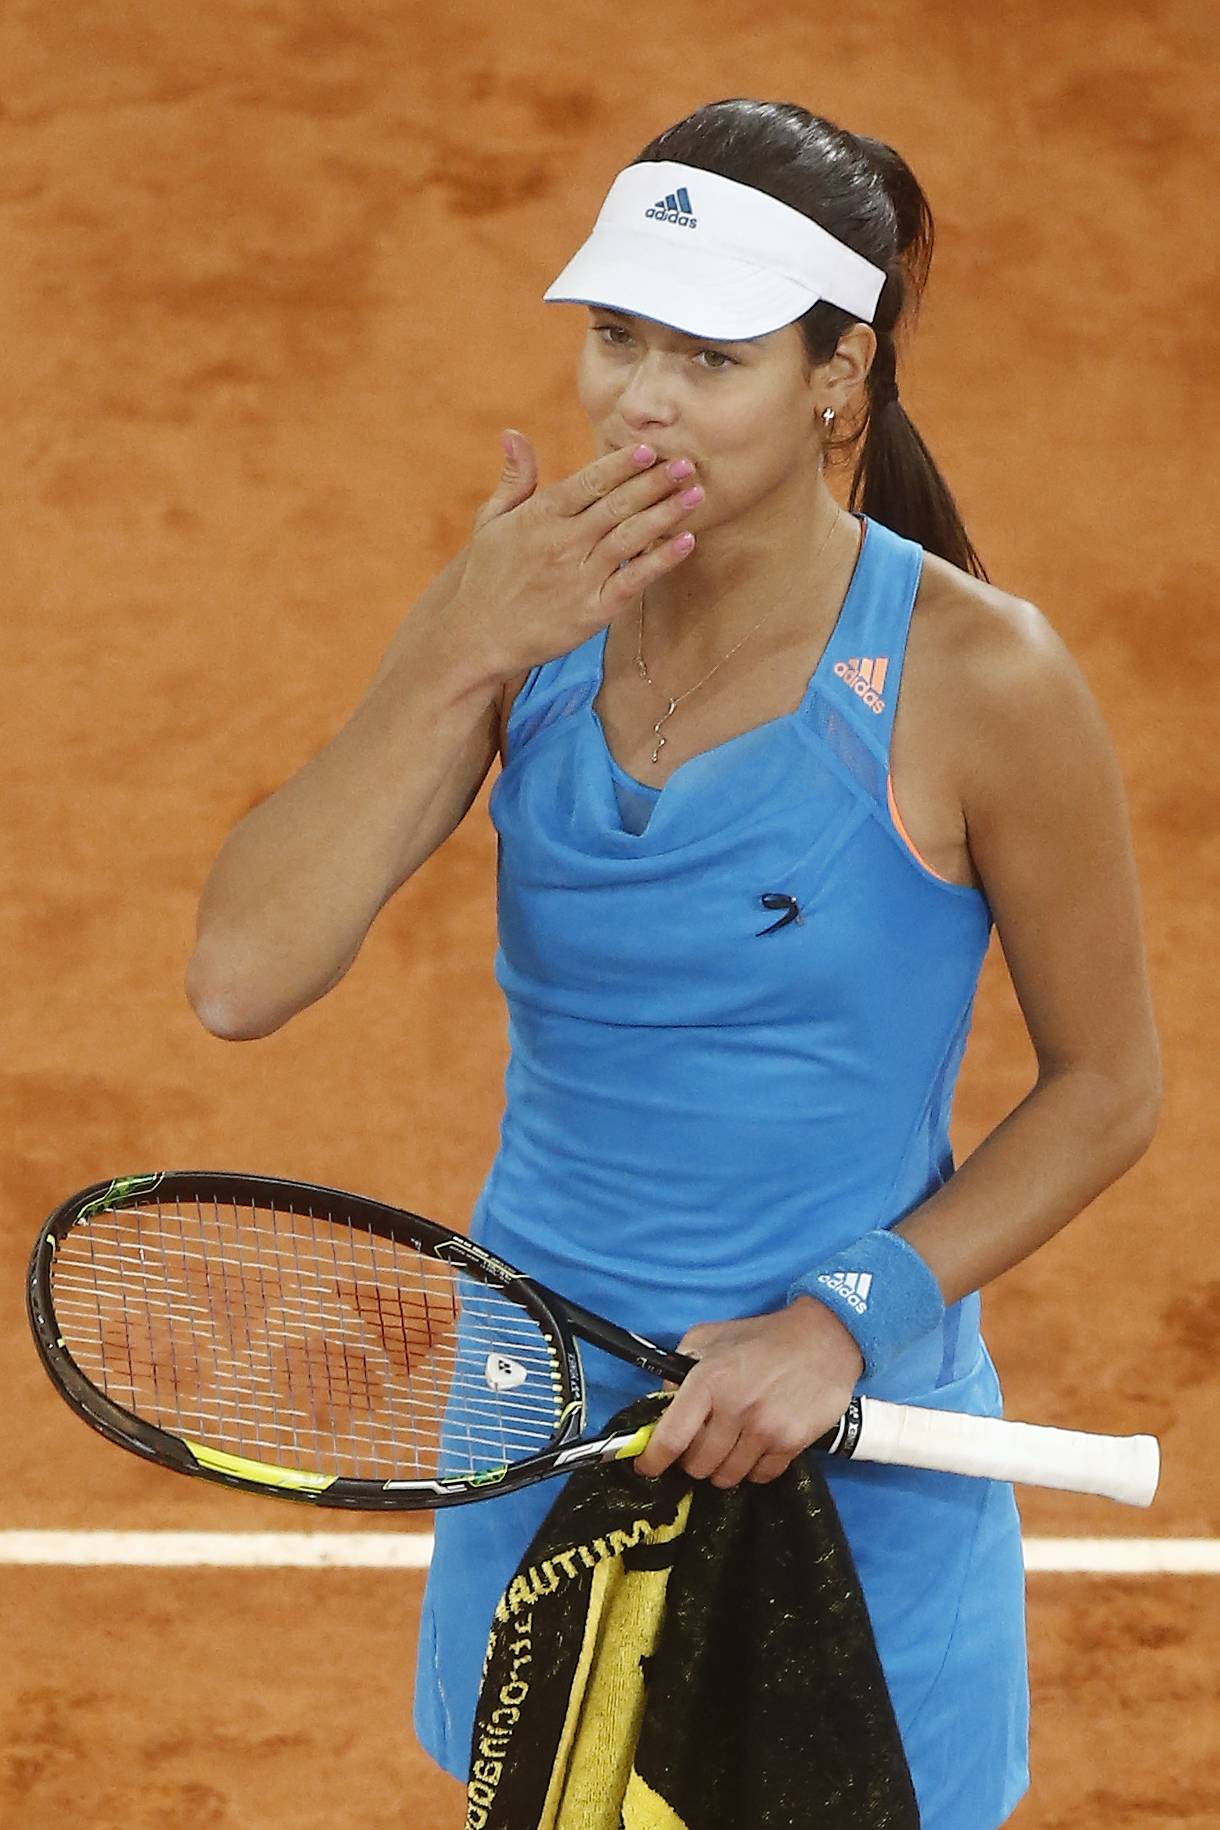 Ana Ivanovic from Serbia celebrates her victory during a Madrid Open tennis tournament match against Bojana Jovanovski from Serbia, in Madrid, Spain, Wednesday, May 7, 2014.